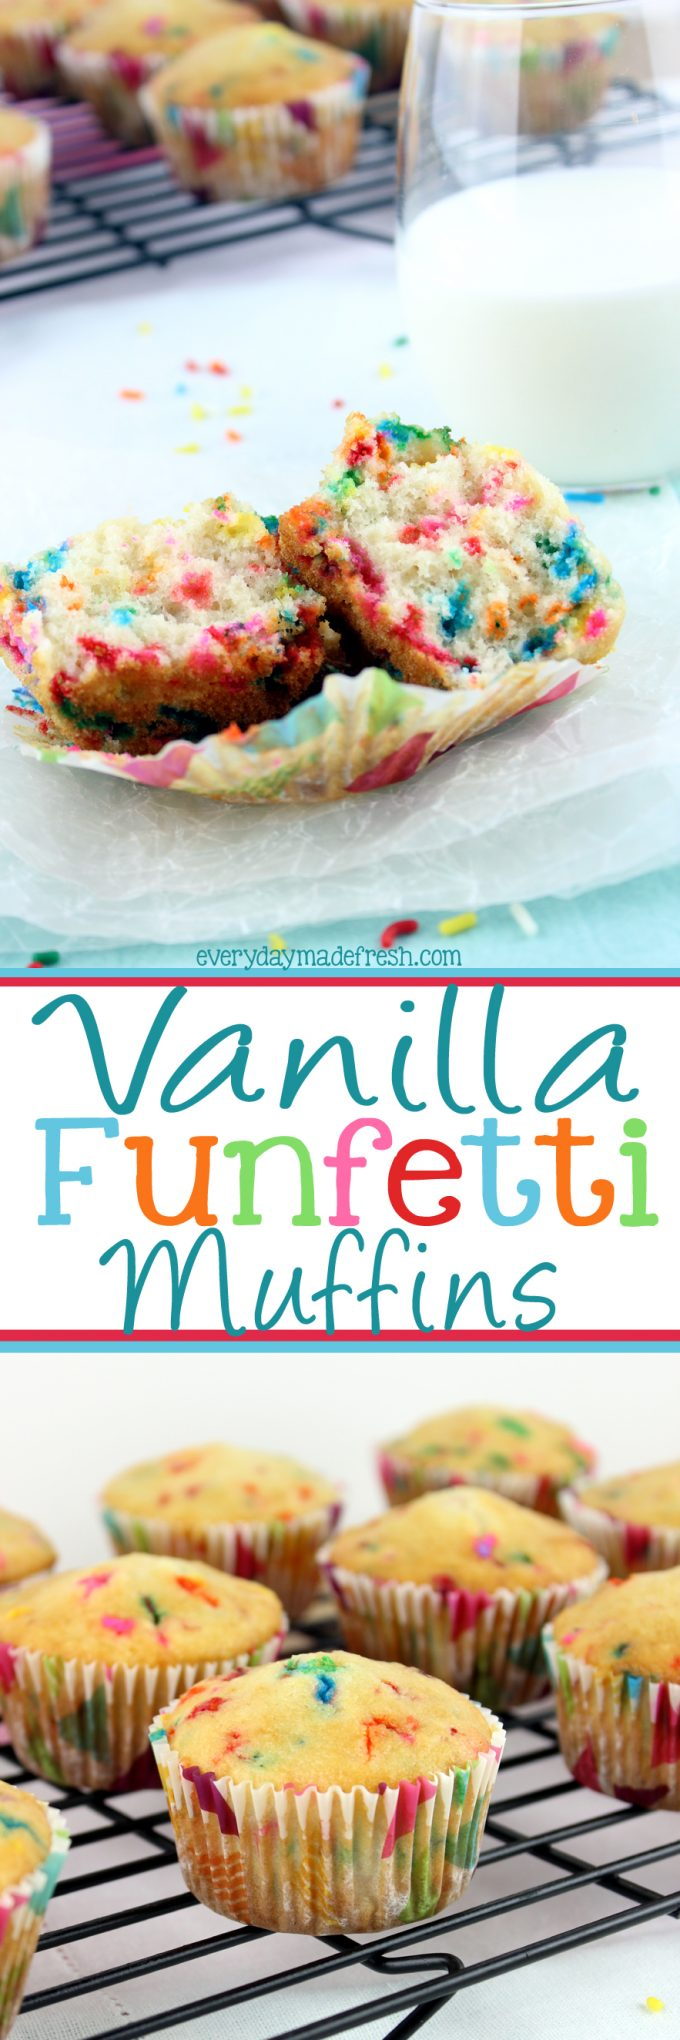 Start your morning with sprinkles! These Vanilla Funfetti Muffins are the funnest grab-and-go breakfast, and kids are gonna love them! | EverydayMadeFresh.com